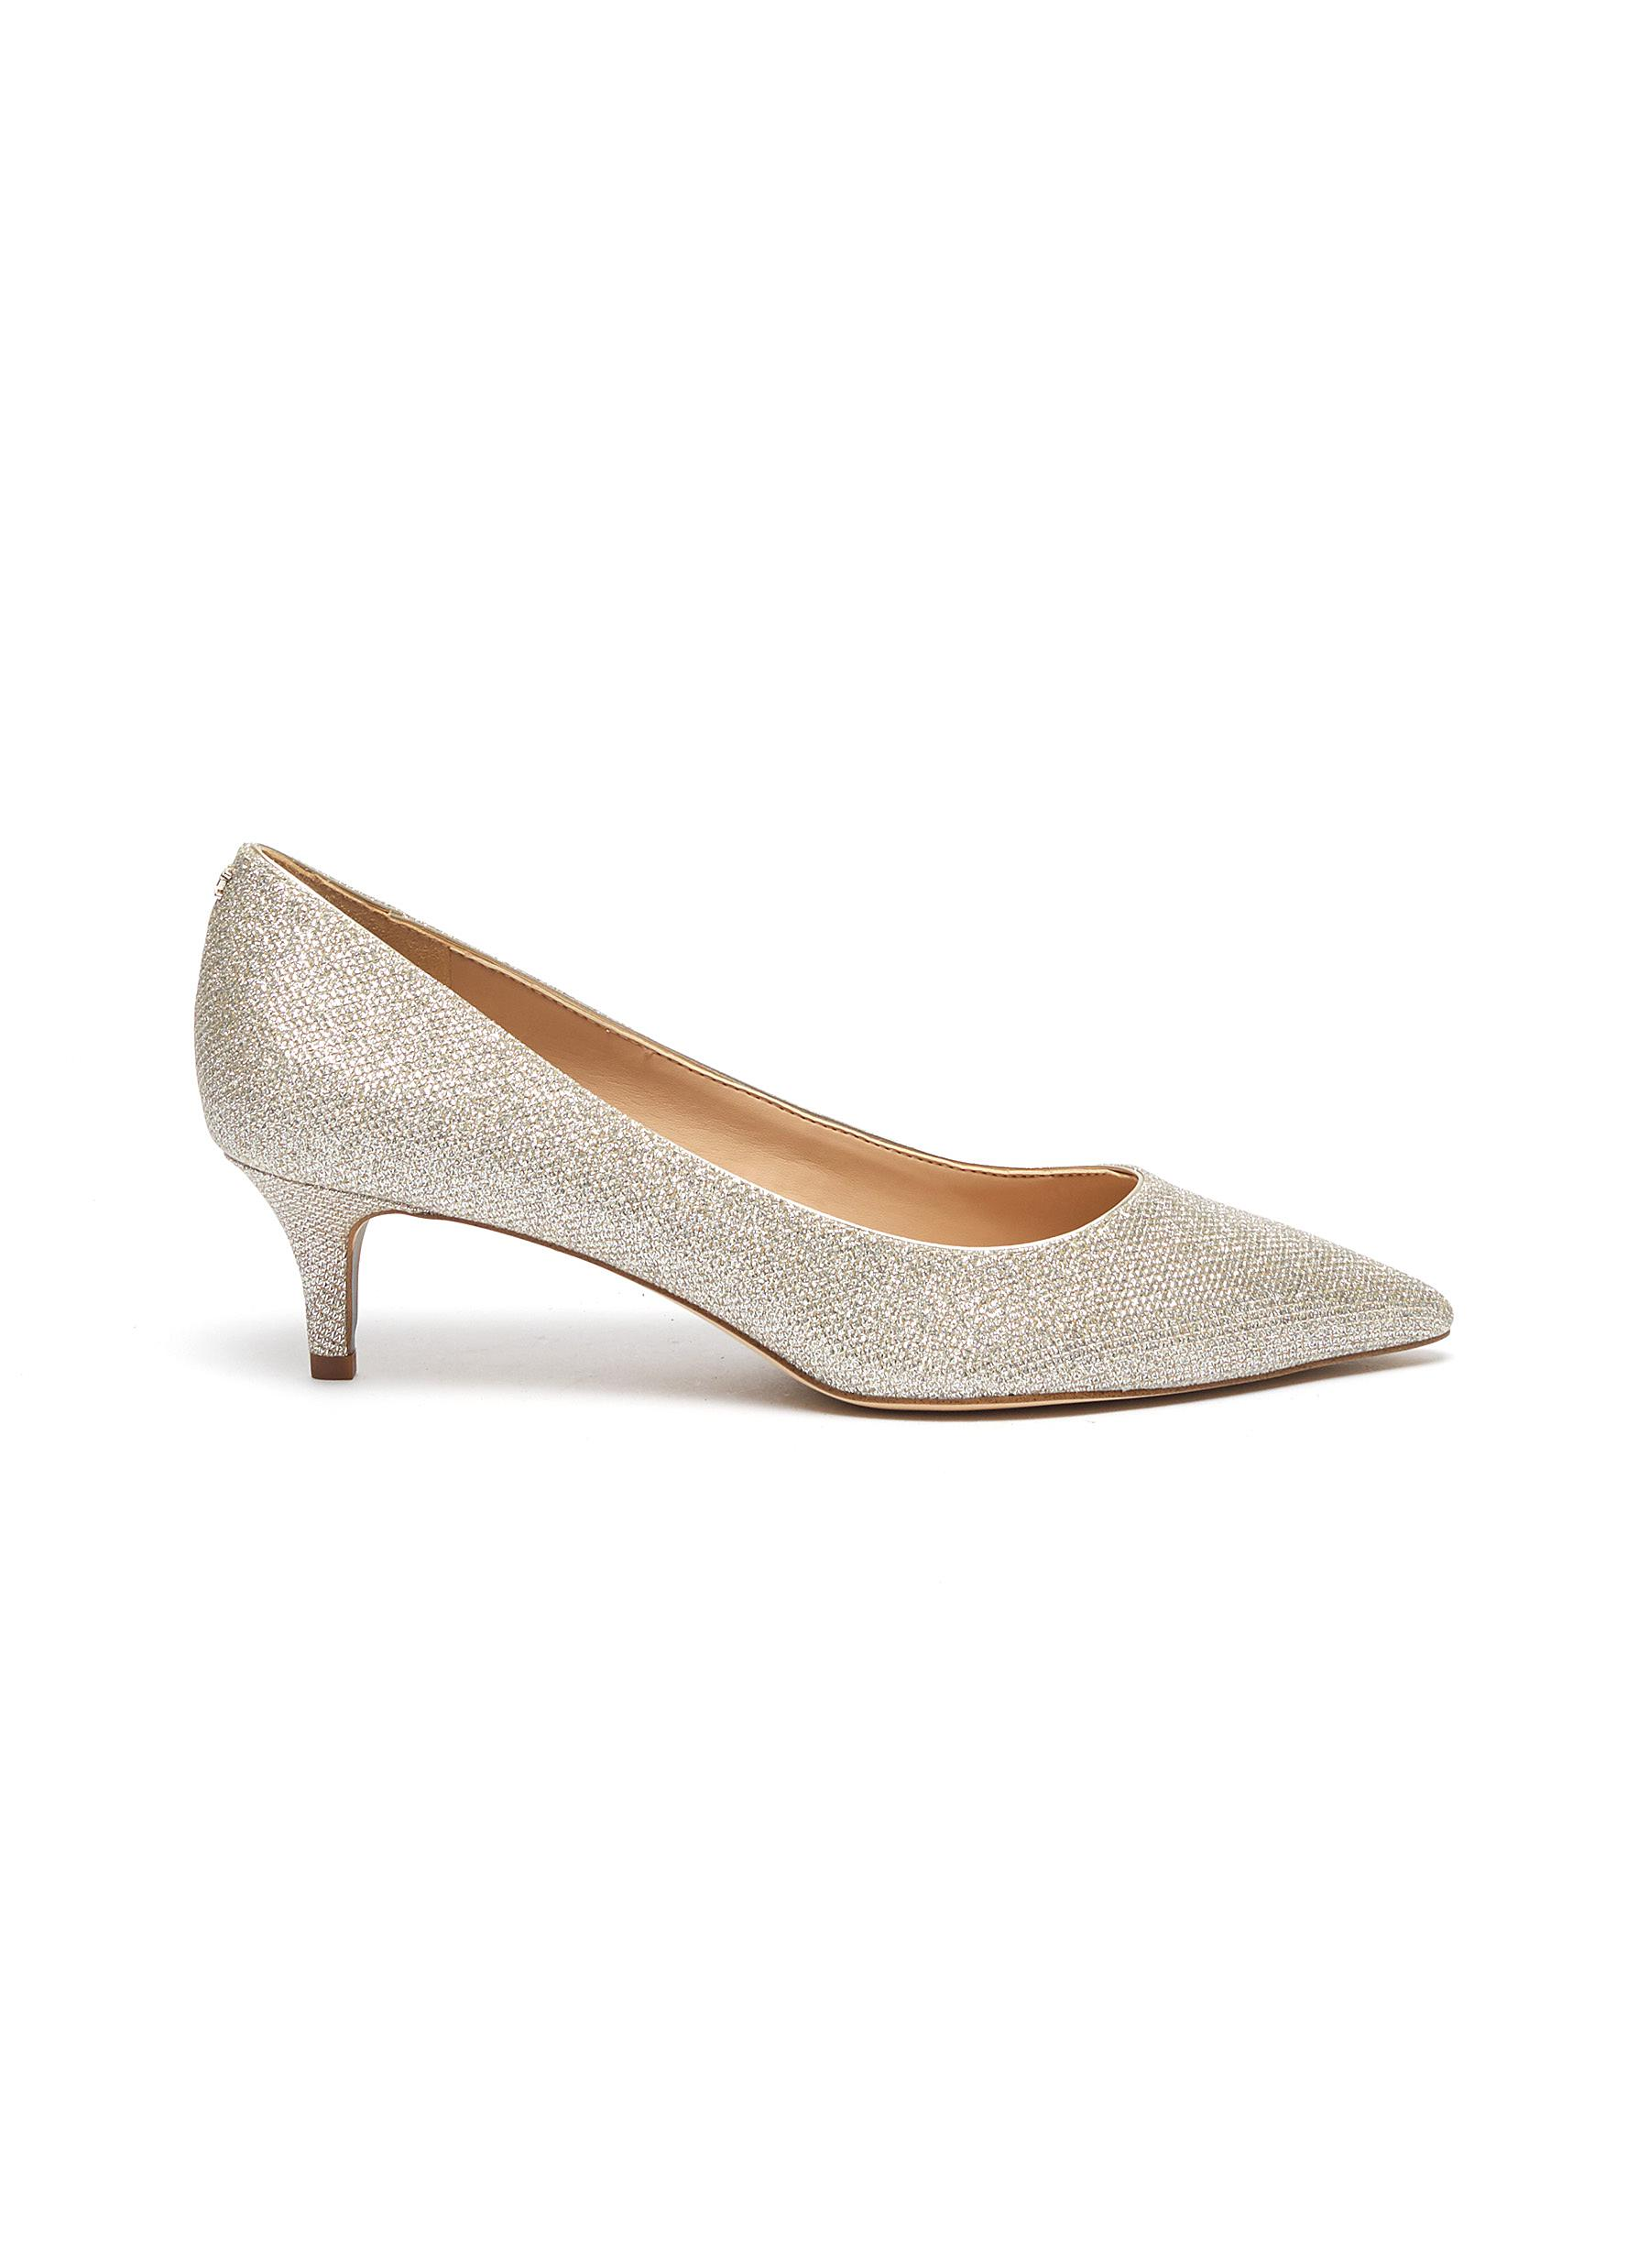 Dori glitter mesh pumps by Sam Edelman